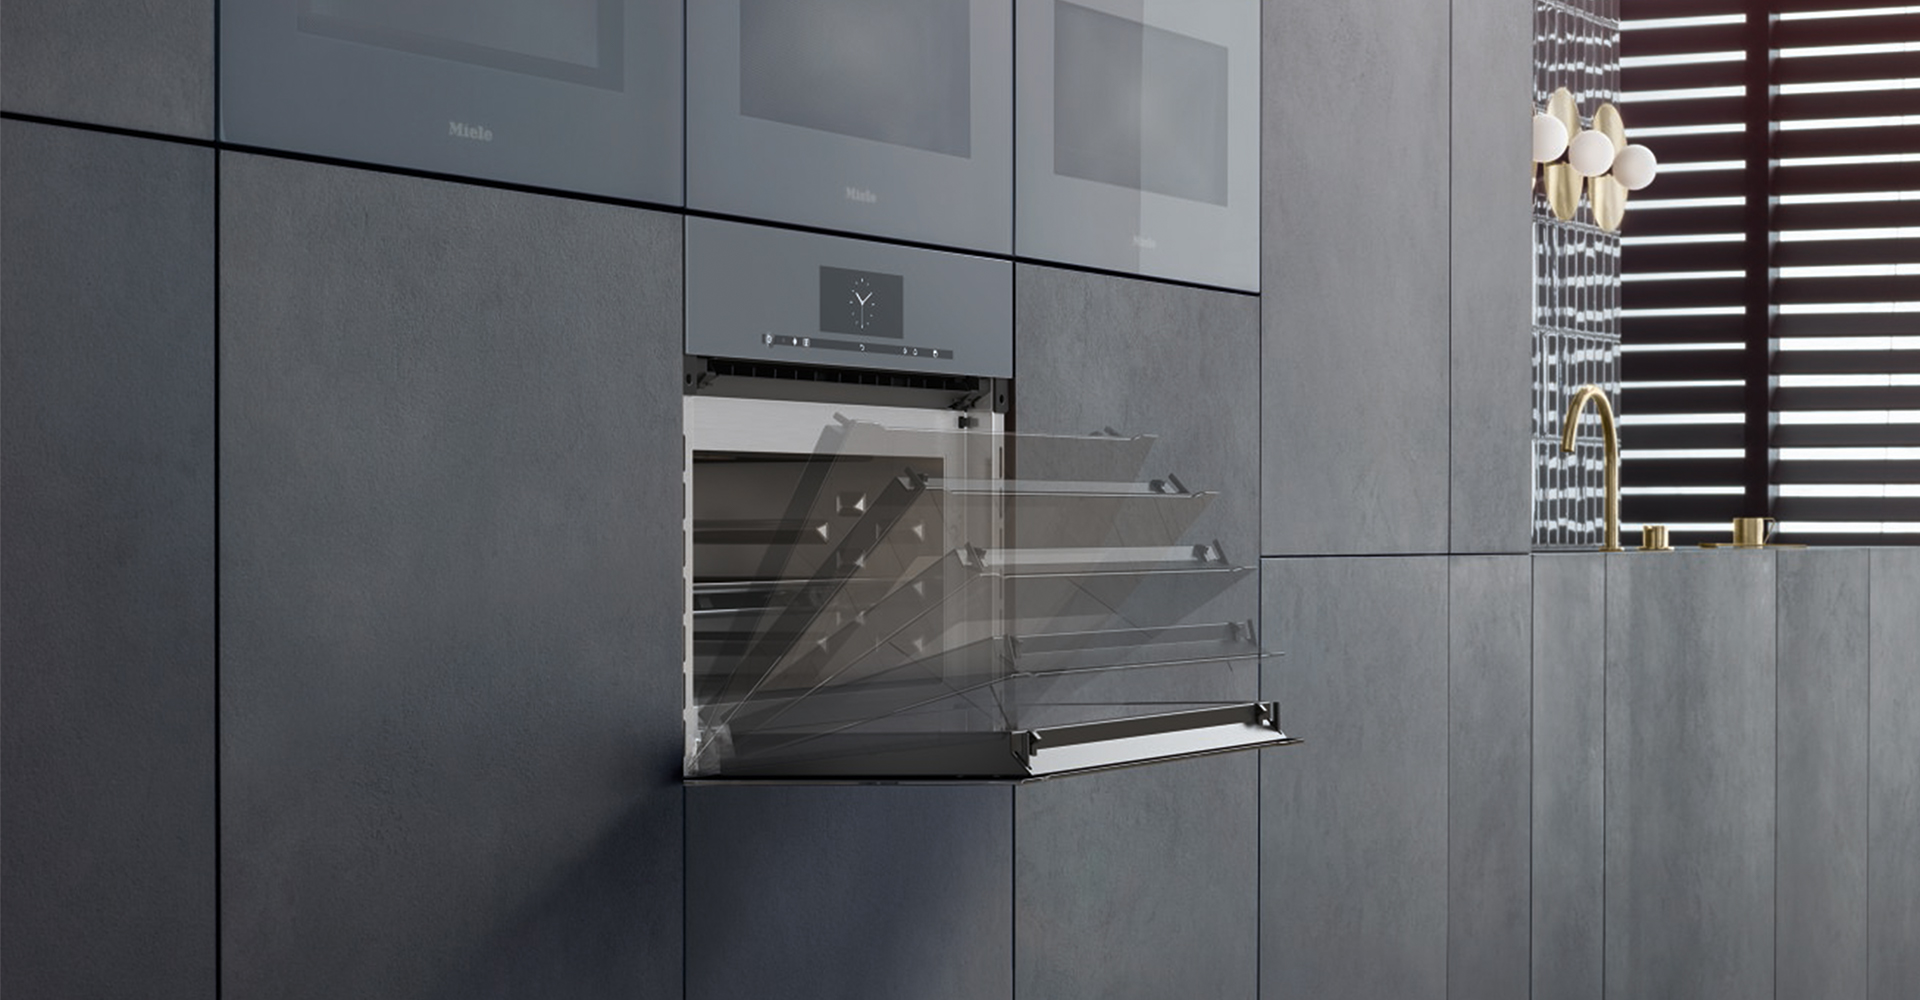 Miele ArtLine Touch2Open